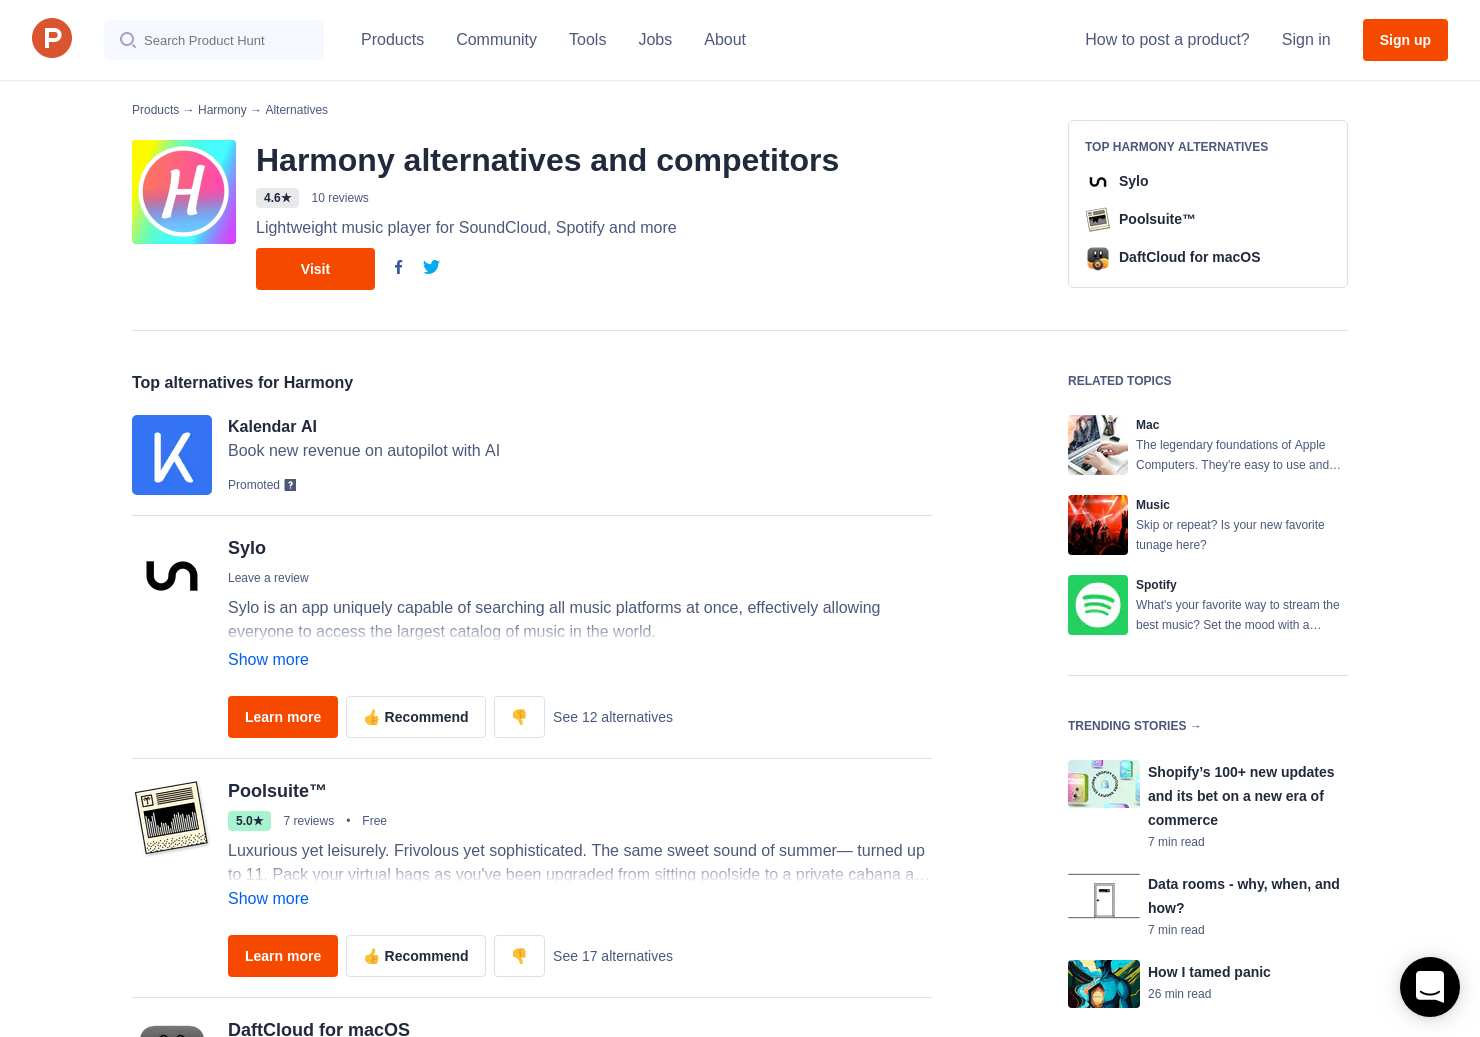 12 alternatives to harmony for linux windows mac product hunt